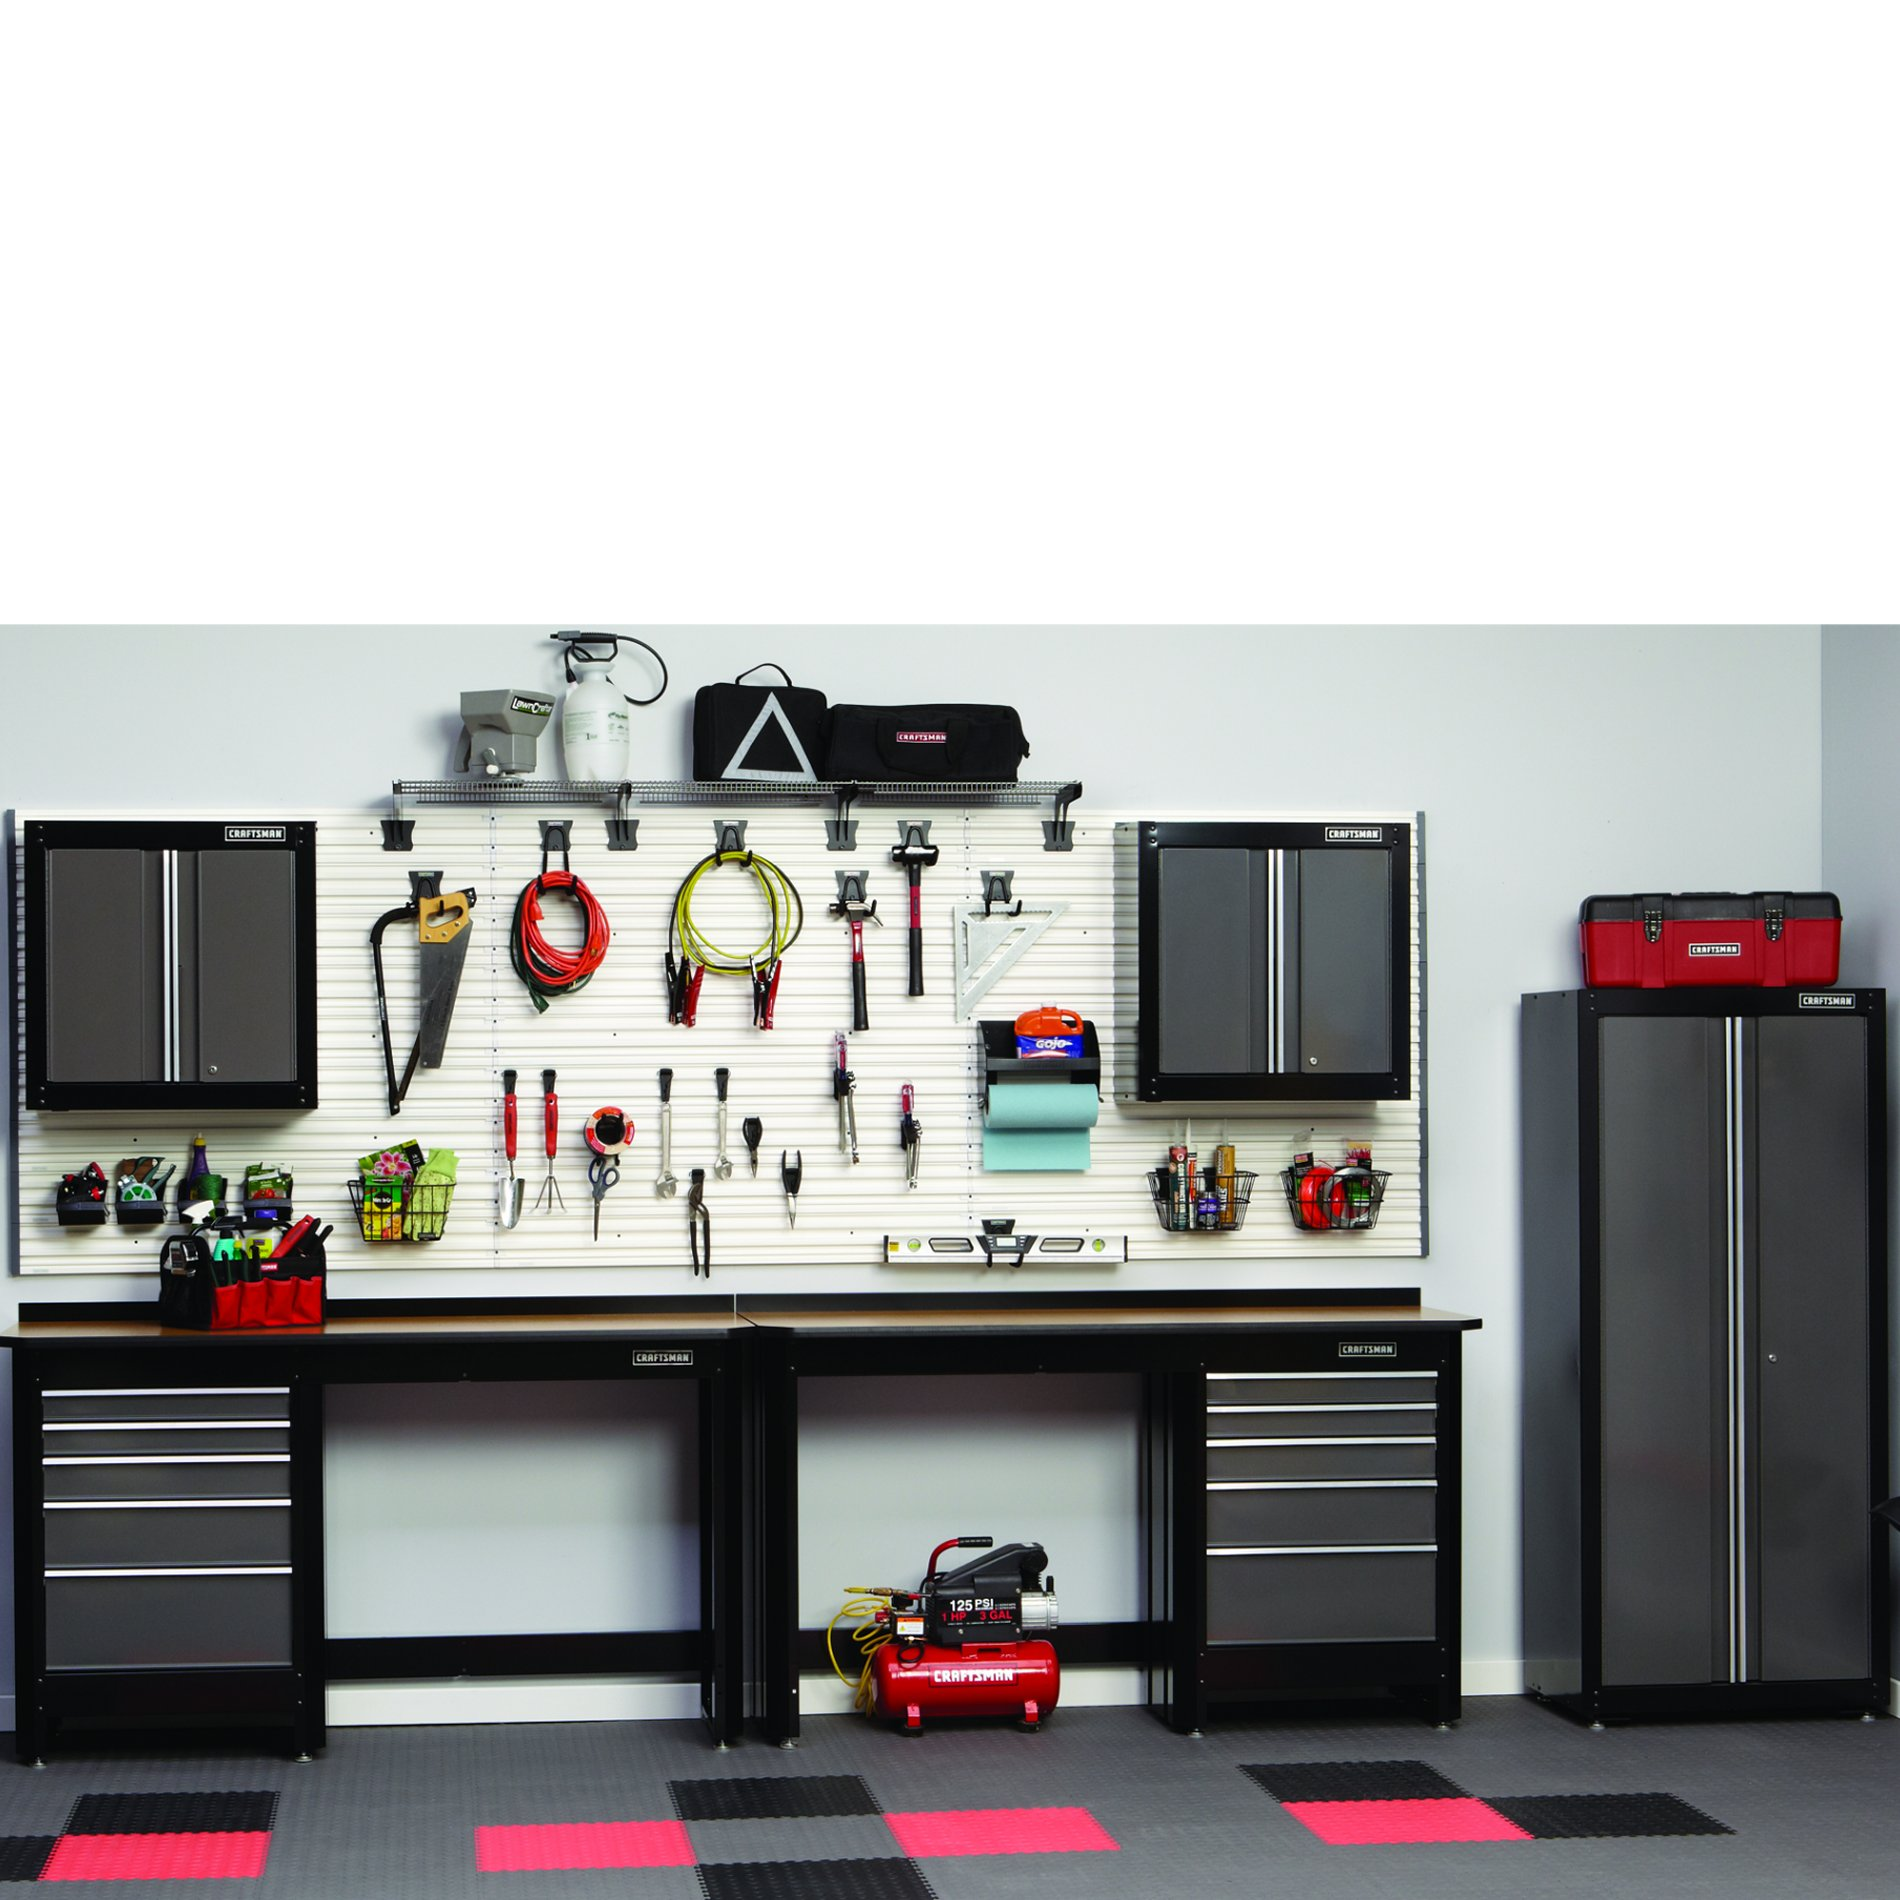 tool heavy full systems wall possibilities of storage cabinet tag rack steel duty cabinets shelving incredible craftsman with decor tags limitless size units garage wooden shelves lowes organization awesome gladiator